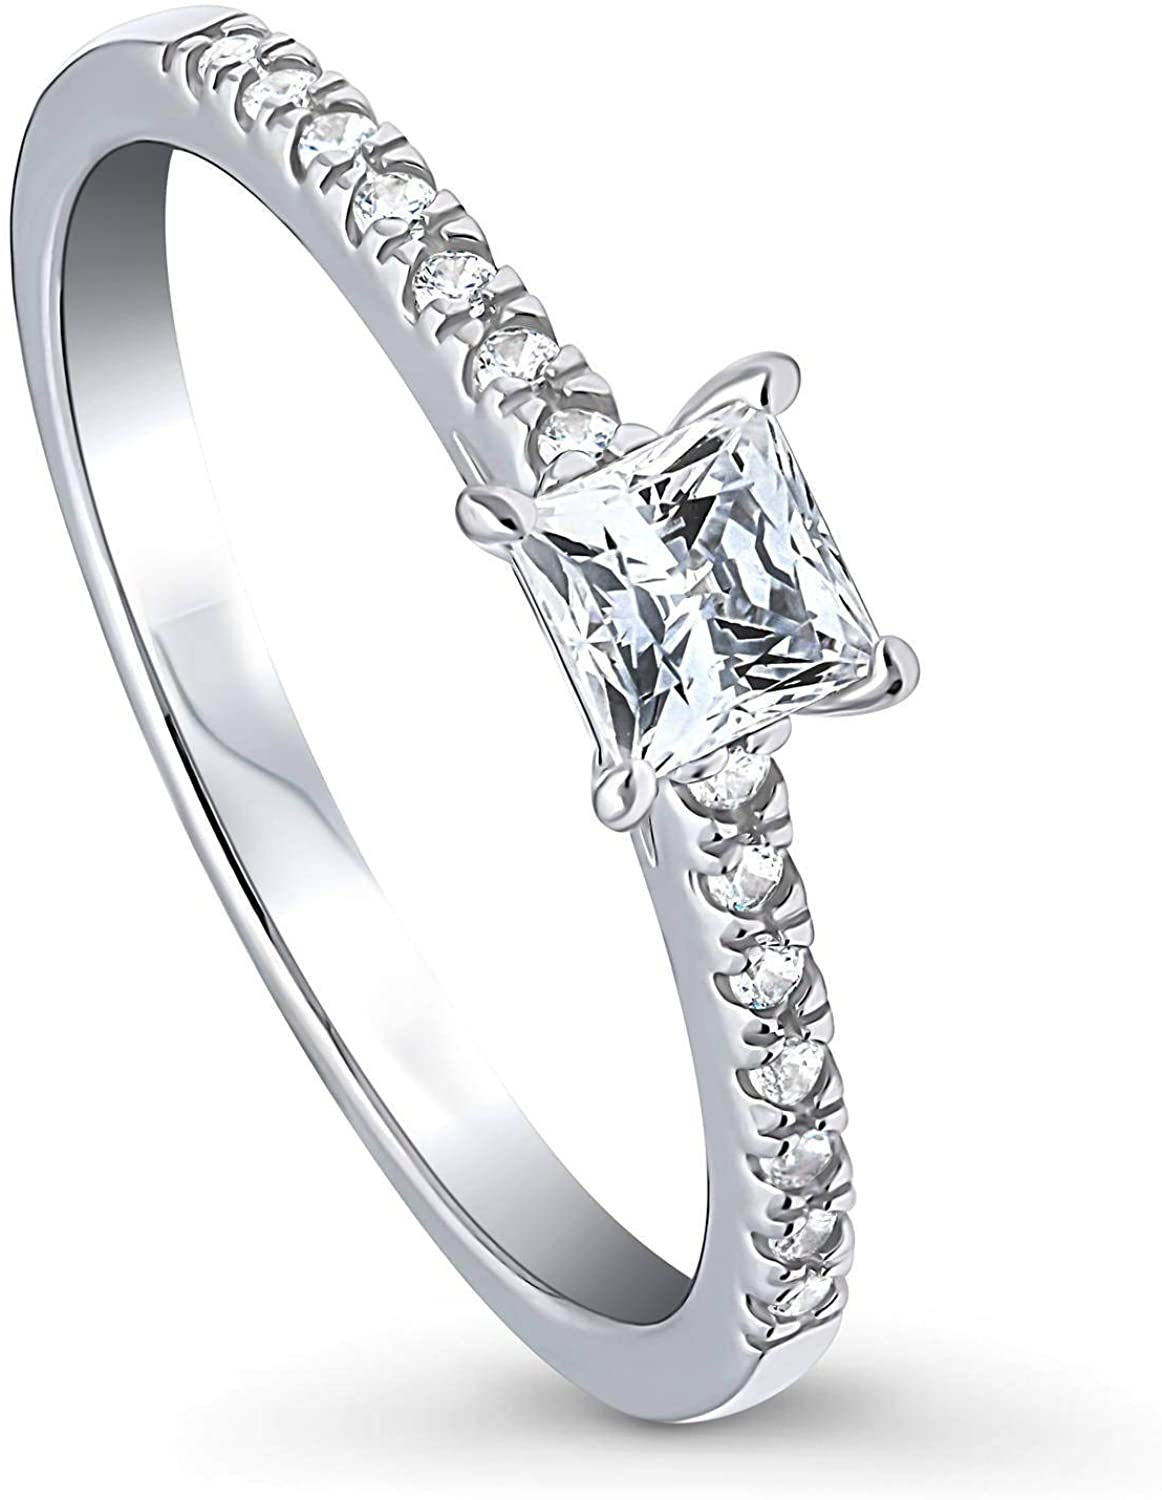 BERRICLE Rhodium Plated Sterling Silver Solitaire Promise Engagement Ring Made with Swarovski Zirconia Princess Cut 0.46 CTW